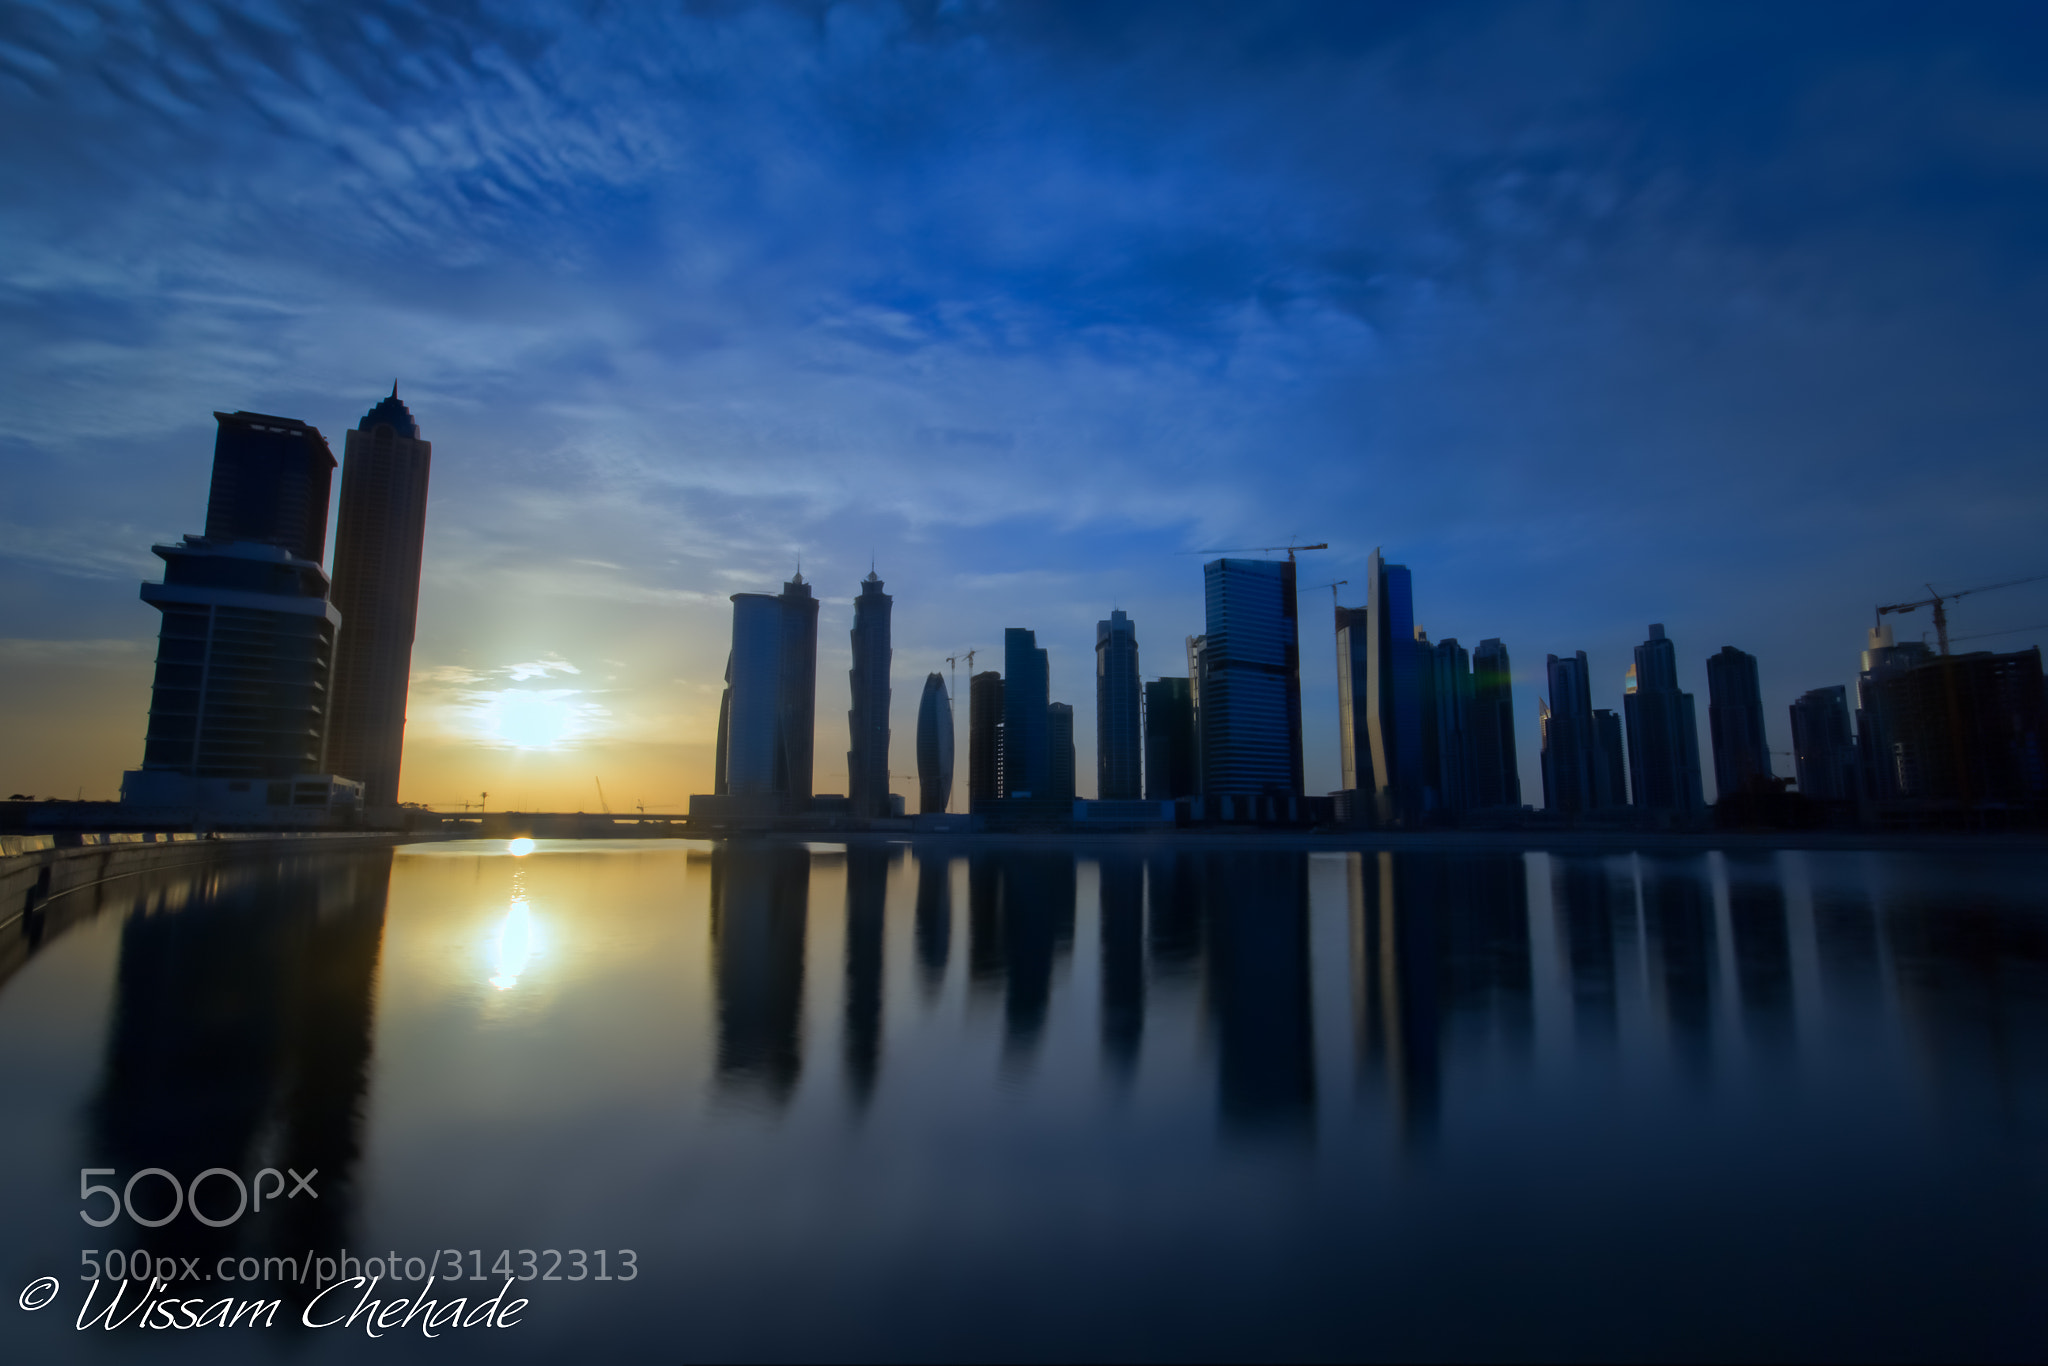 Photograph Blue Warm Sunset ... by Wissam Chehade on 500px